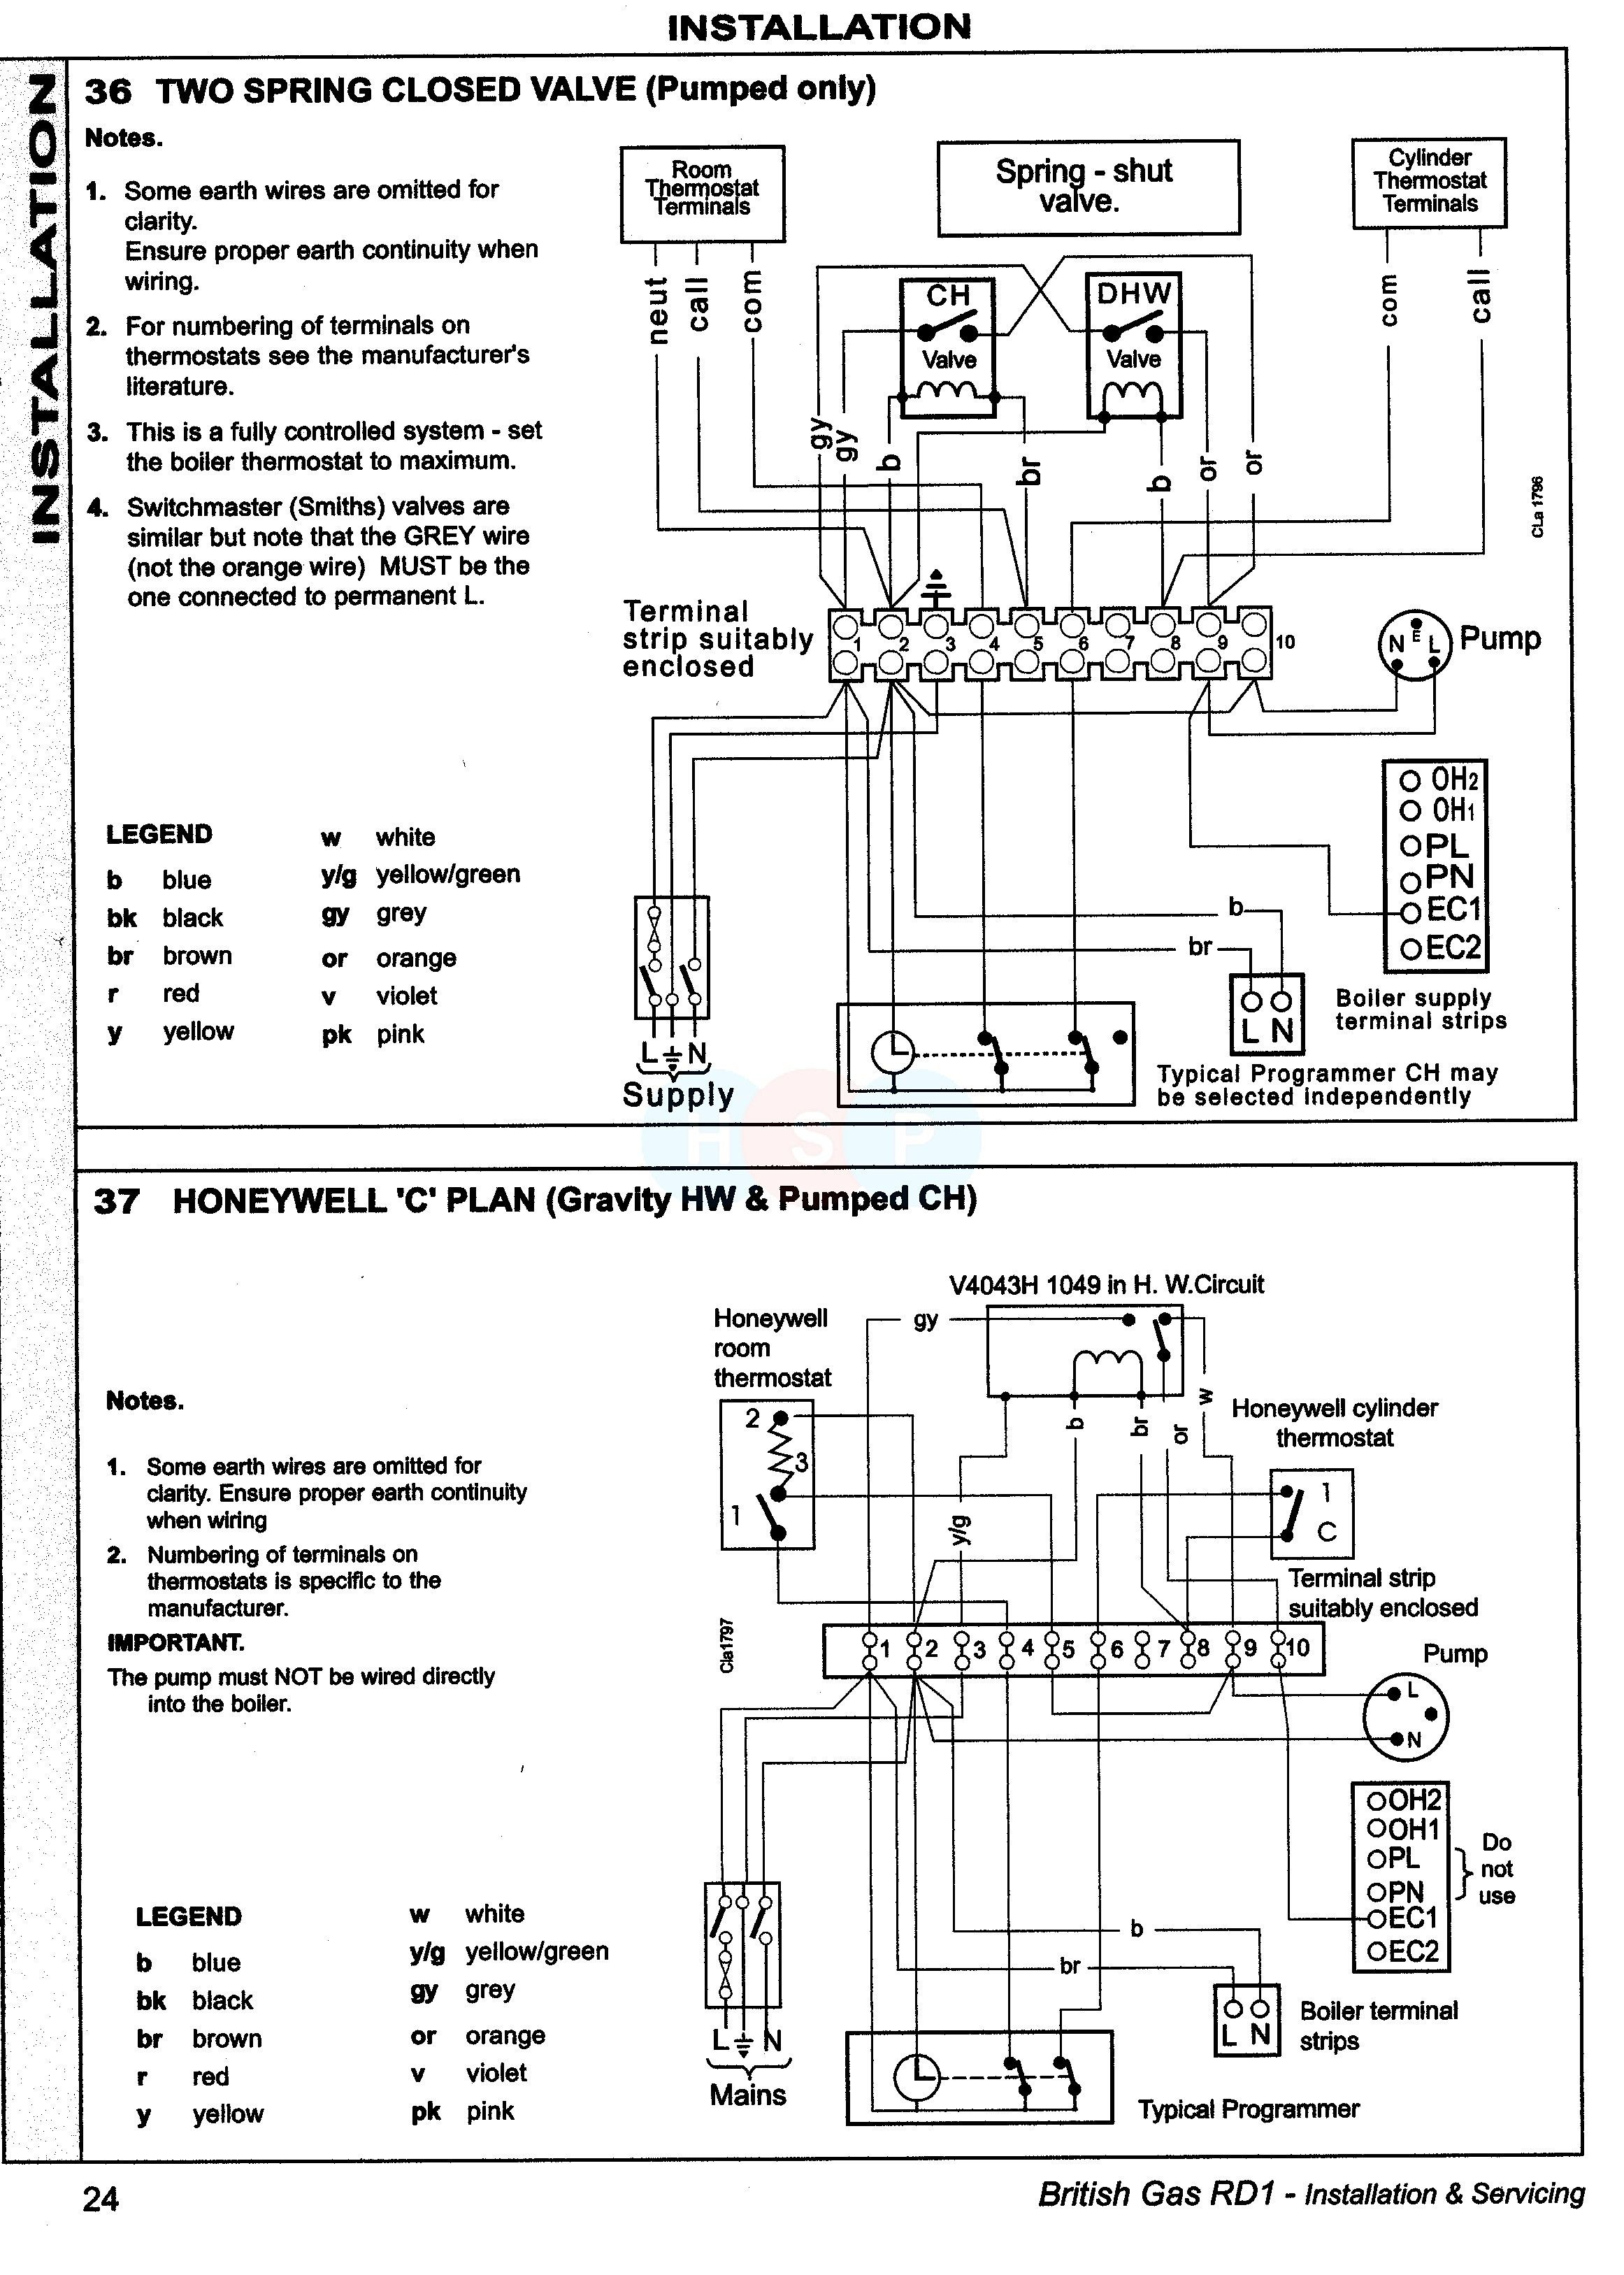 hight resolution of lovely wiring diagram for honeywell s plan diagrams digramssample diagramimages wiringdiagramsample